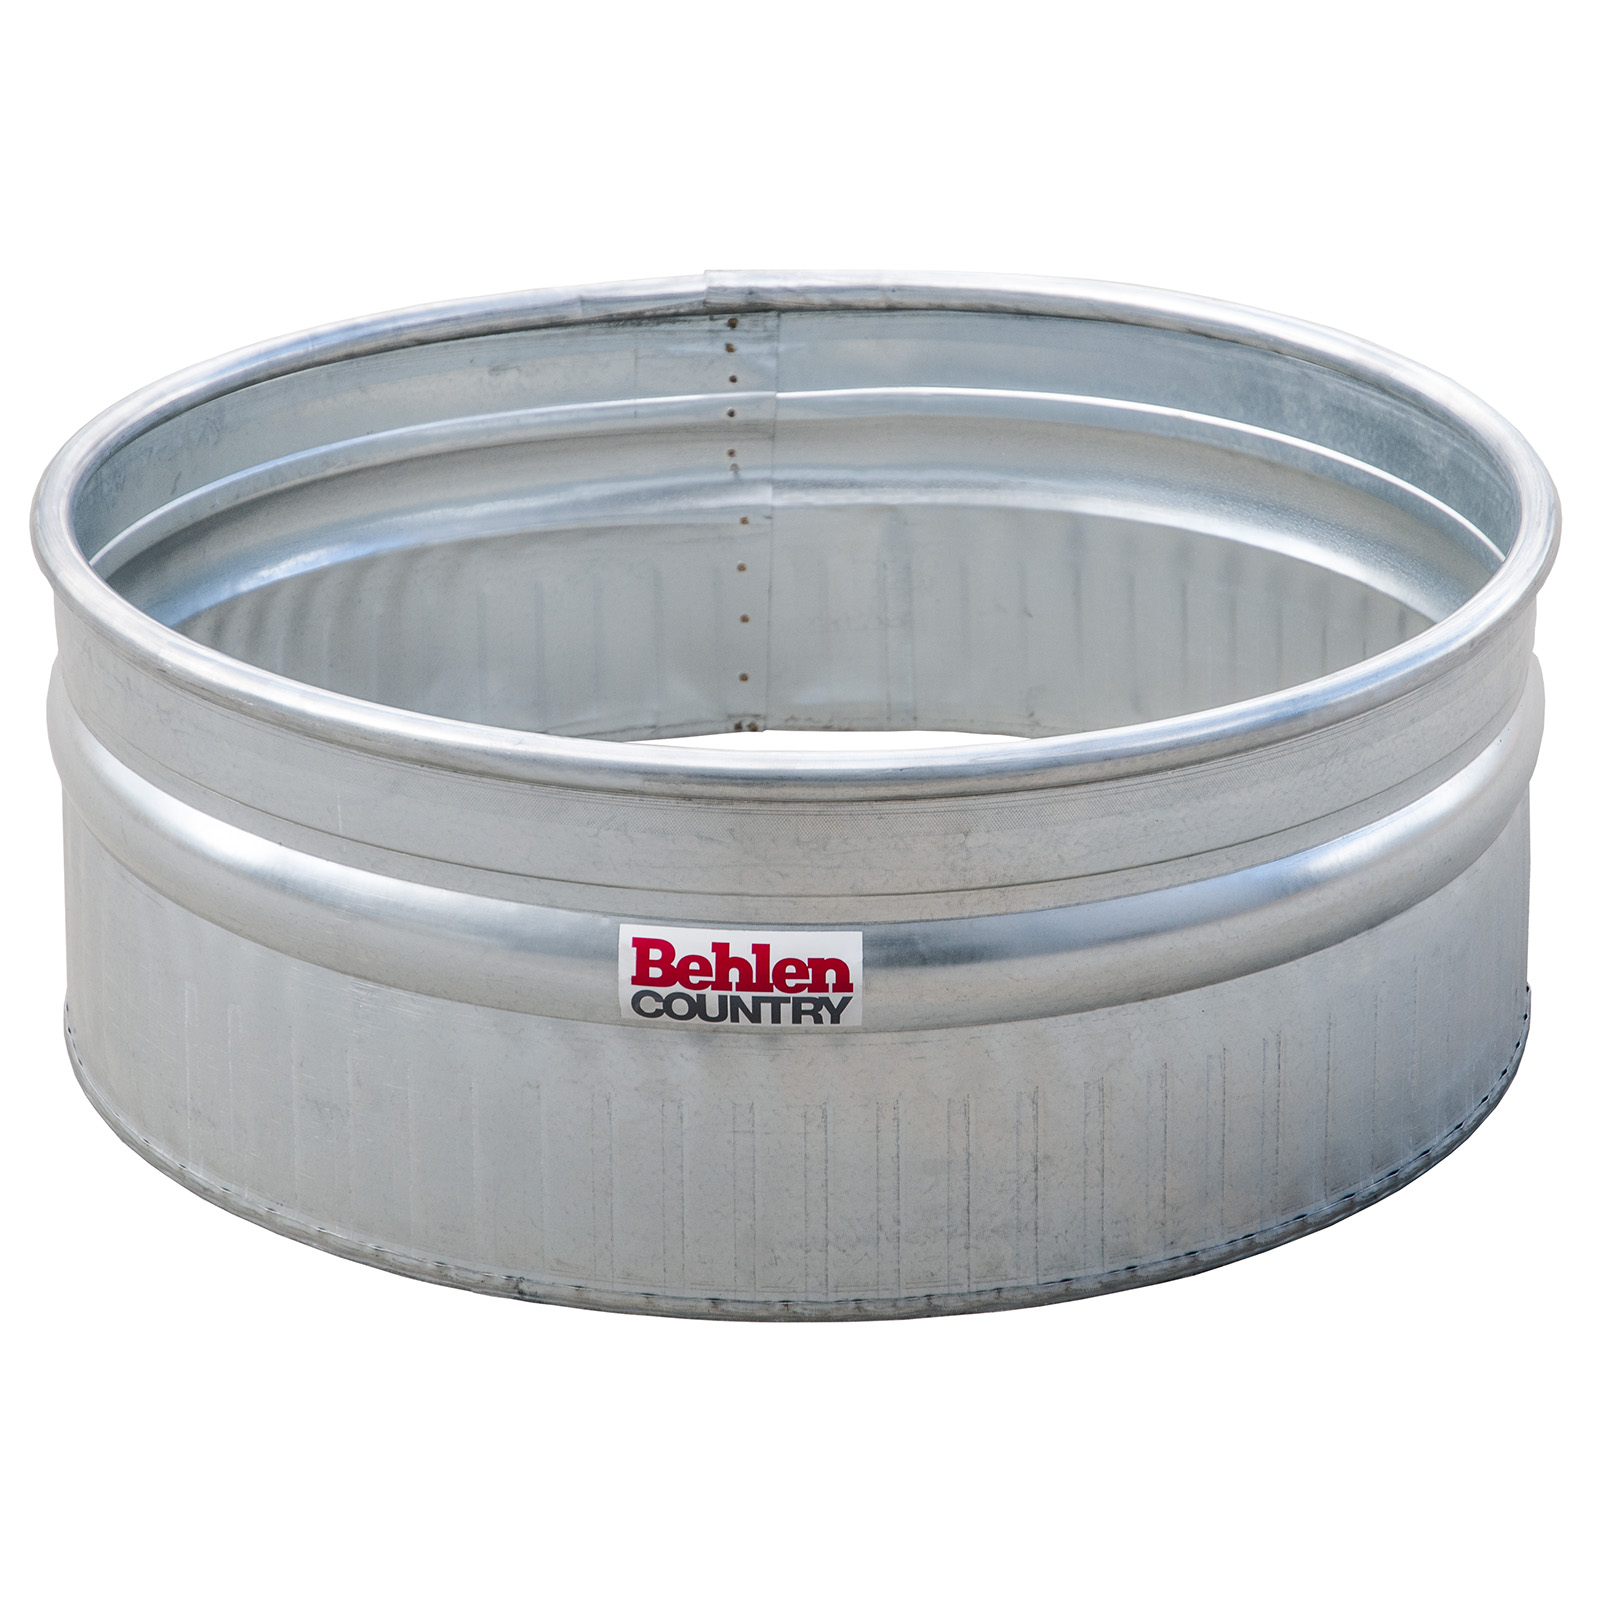 Bottomless Planters Fire Rings Product Categories Behlen Country